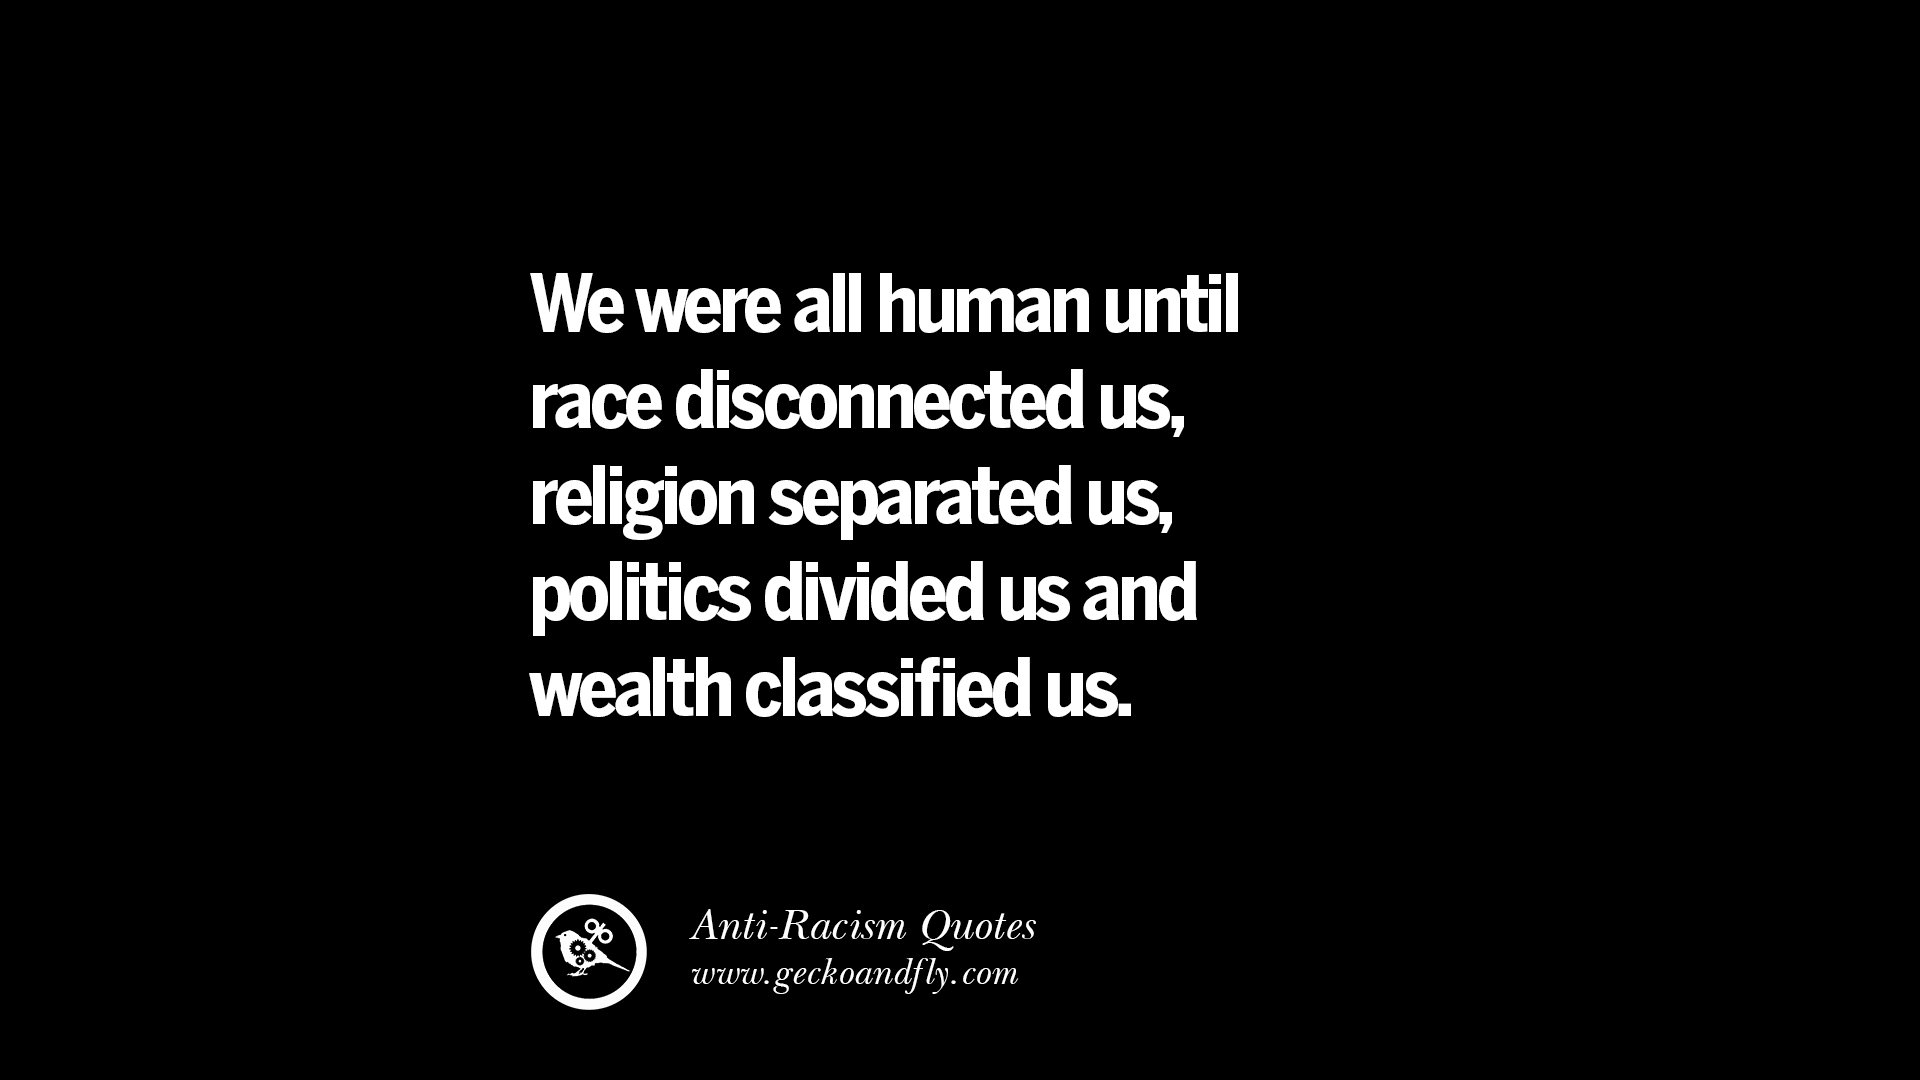 All Quotes 16 Quotes About Anti Racism And Against Racial Discrimination